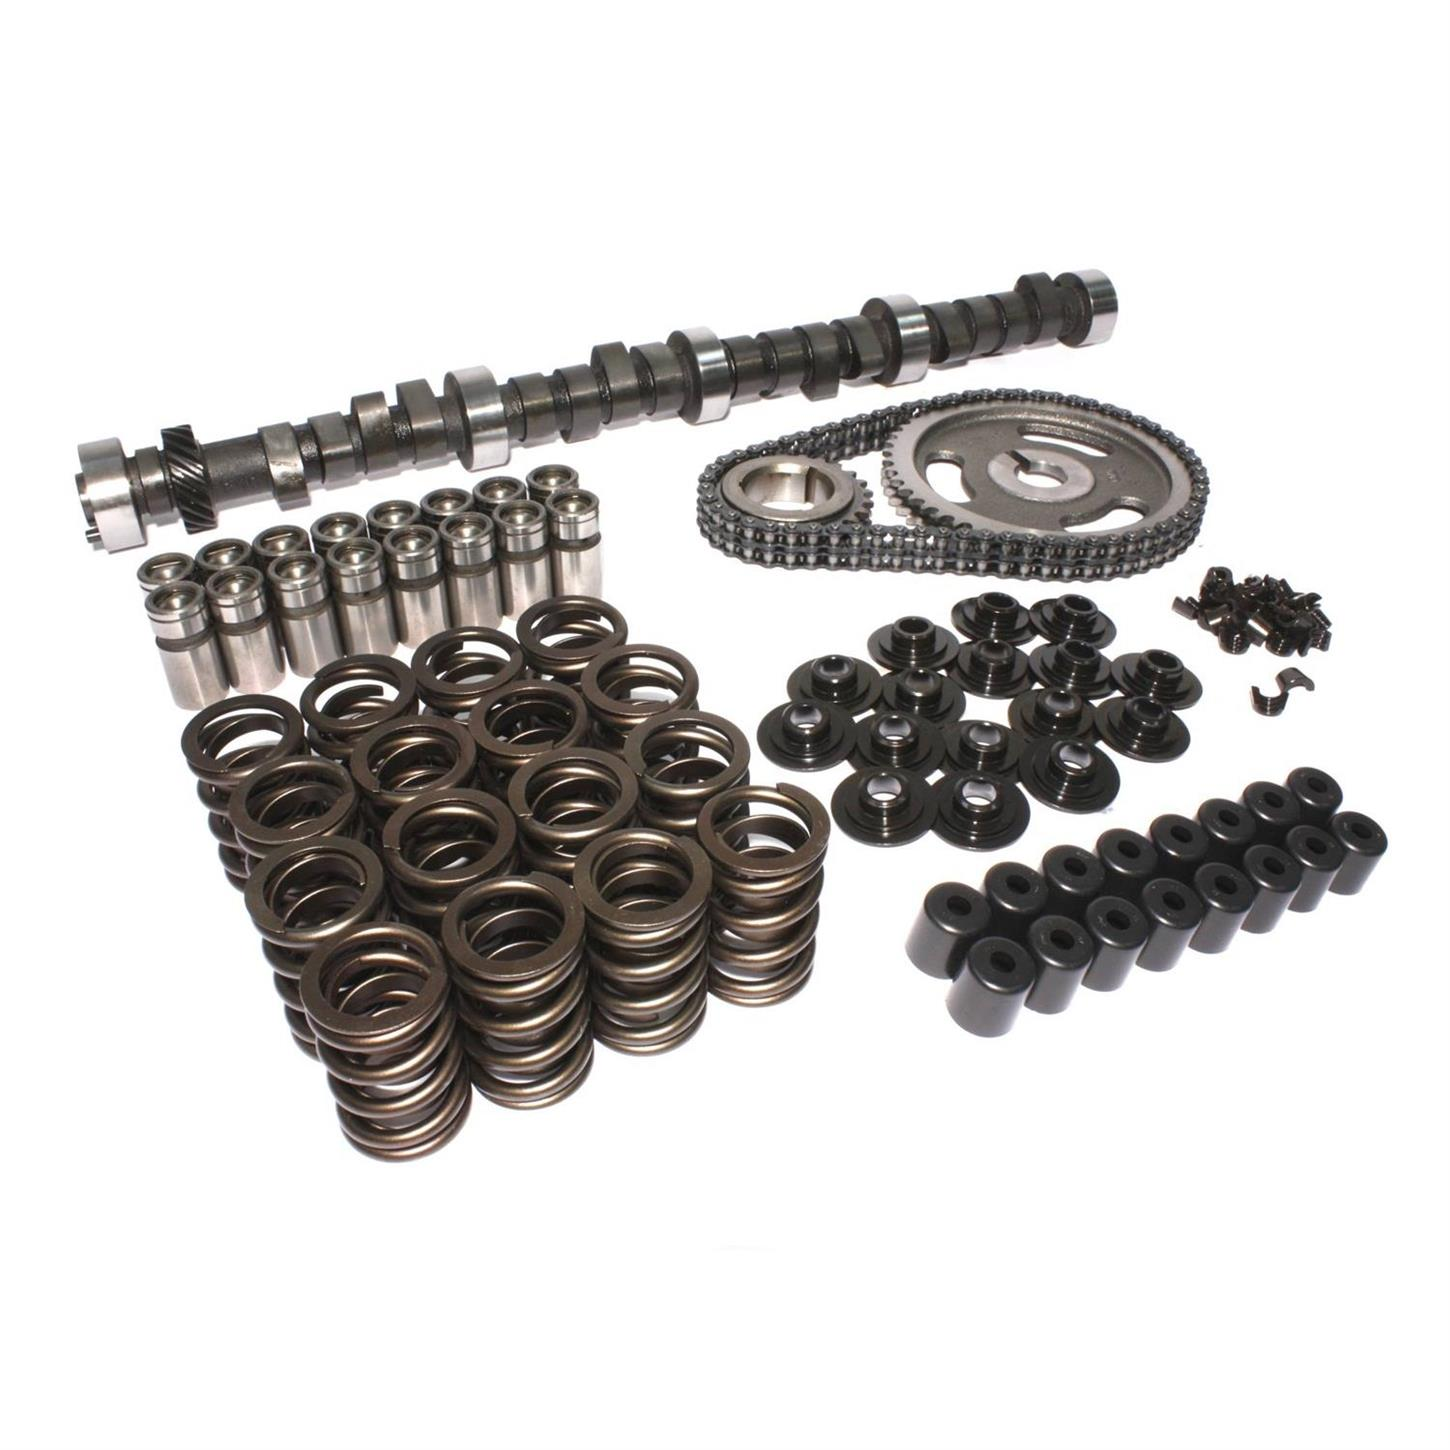 COMP Cams SK21-221-4 Xtreme Energy 212//218 Hydraulic Flat Cam SK-Kit for Chrysler 383-440